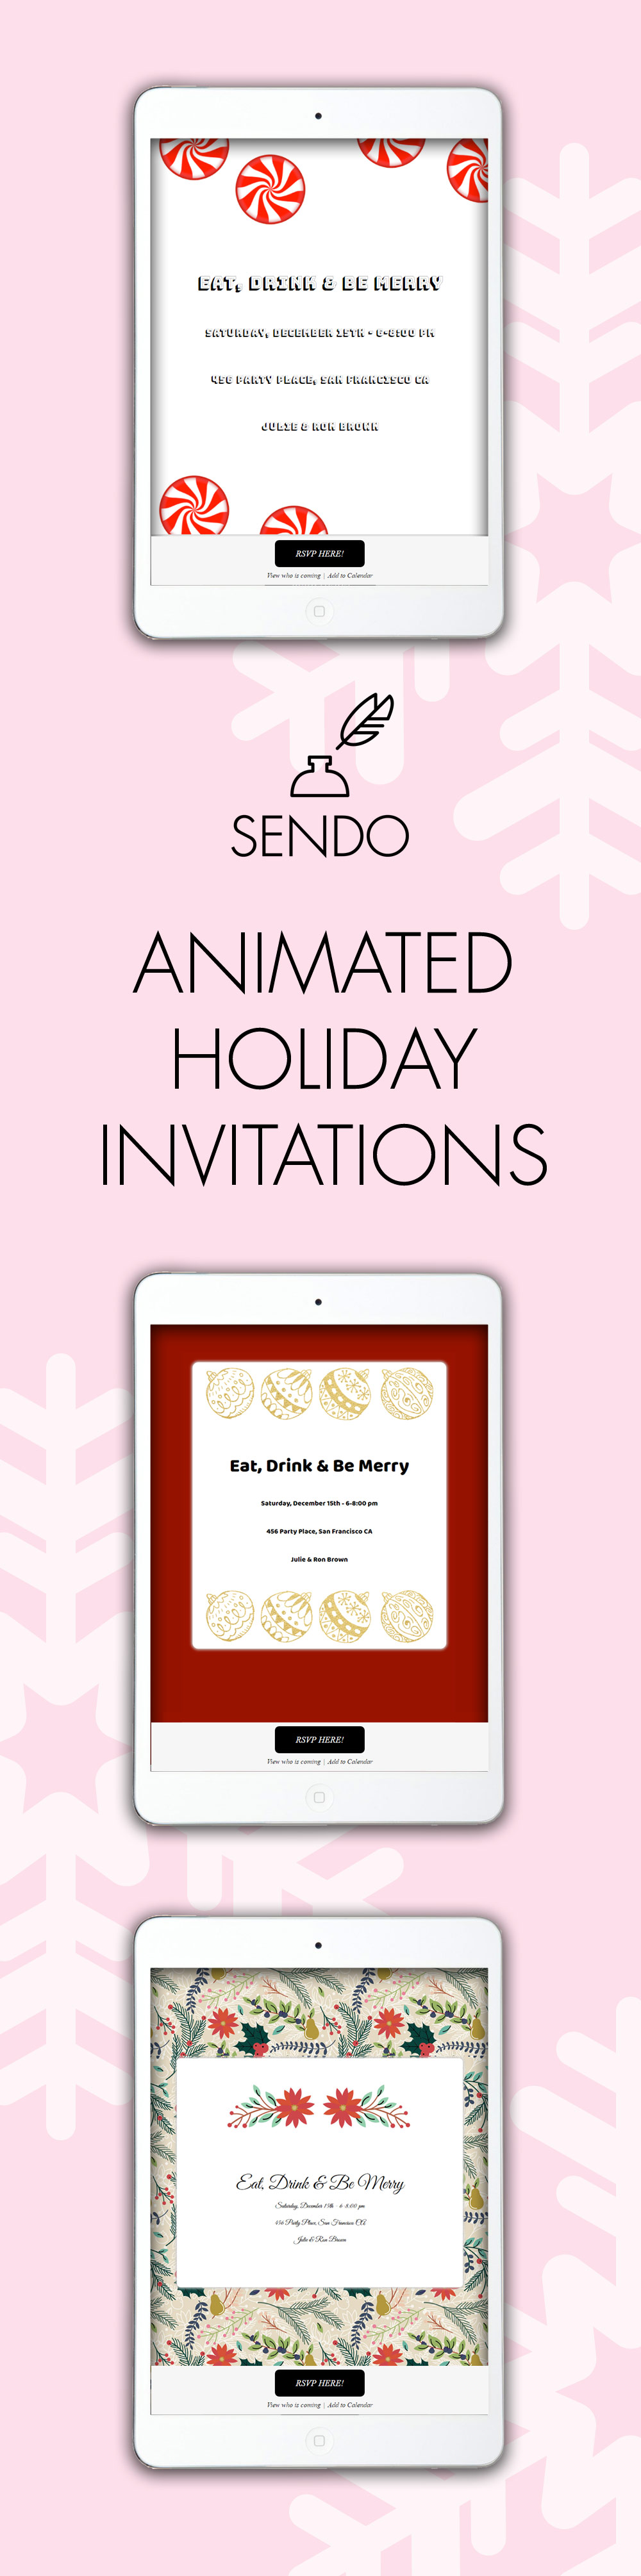 Animated Holiday Online Invitations - music, RSVP management ...